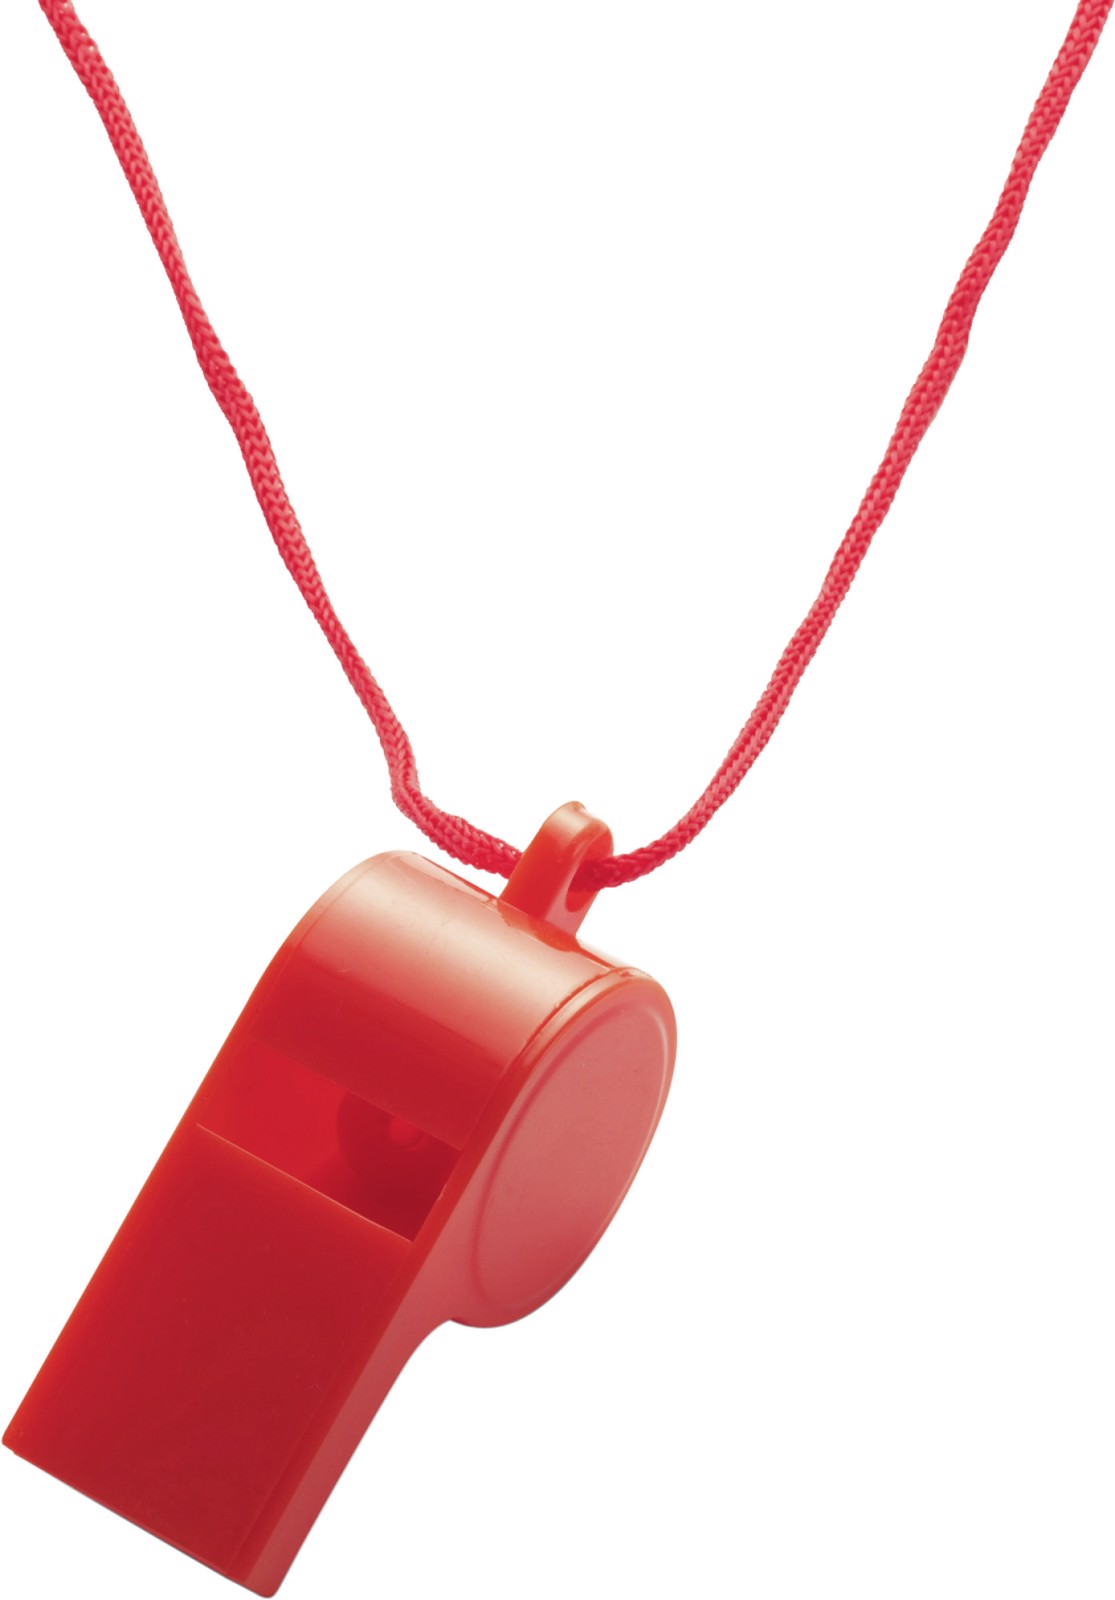 PS whistle - Red